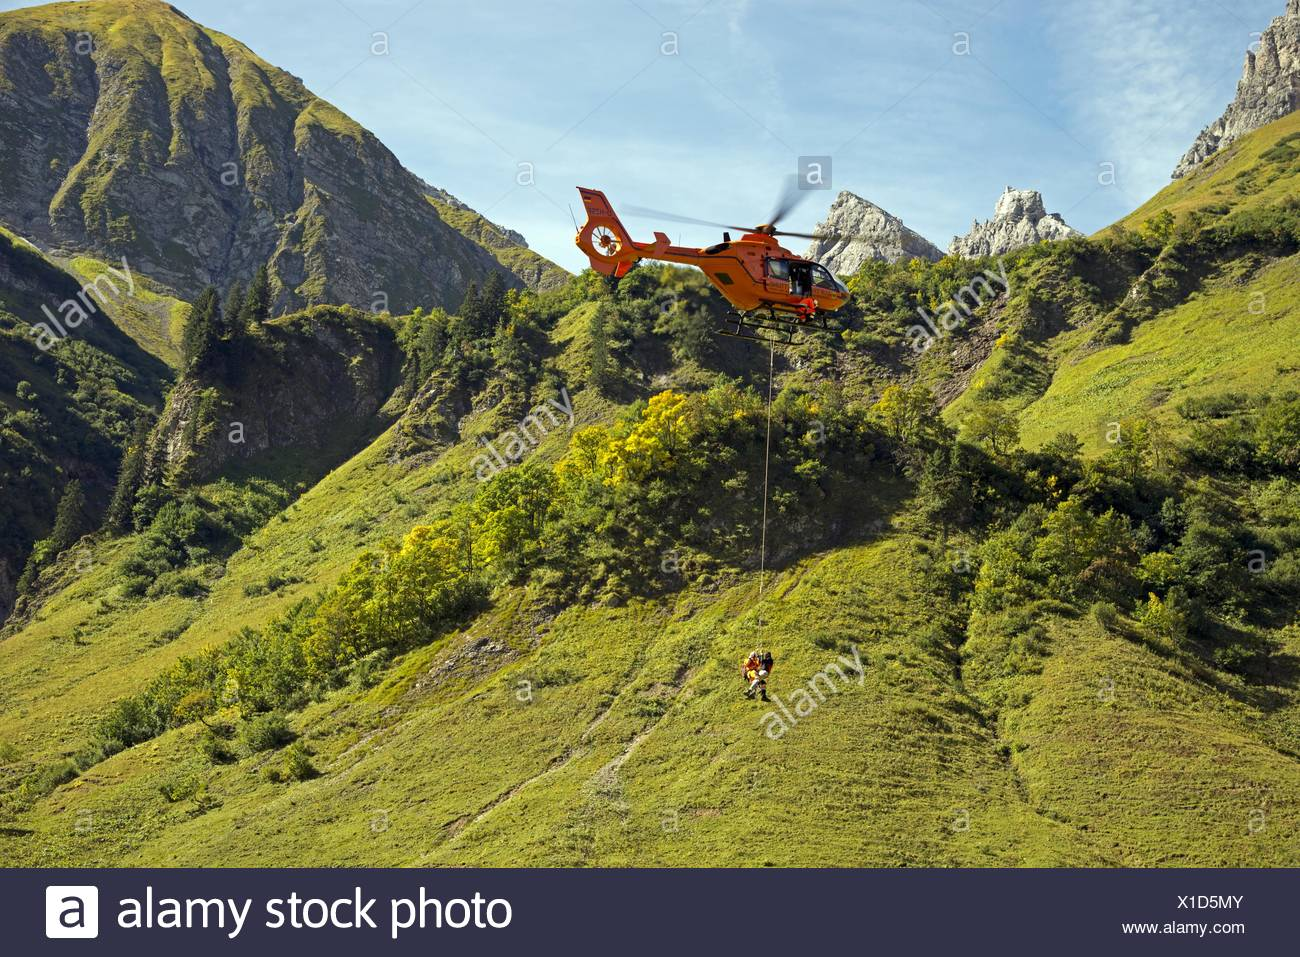 training for a Mountain rescue with a helicopter, Germany, Bavaria, Allgaeu Alps, Oytal Stock Photo